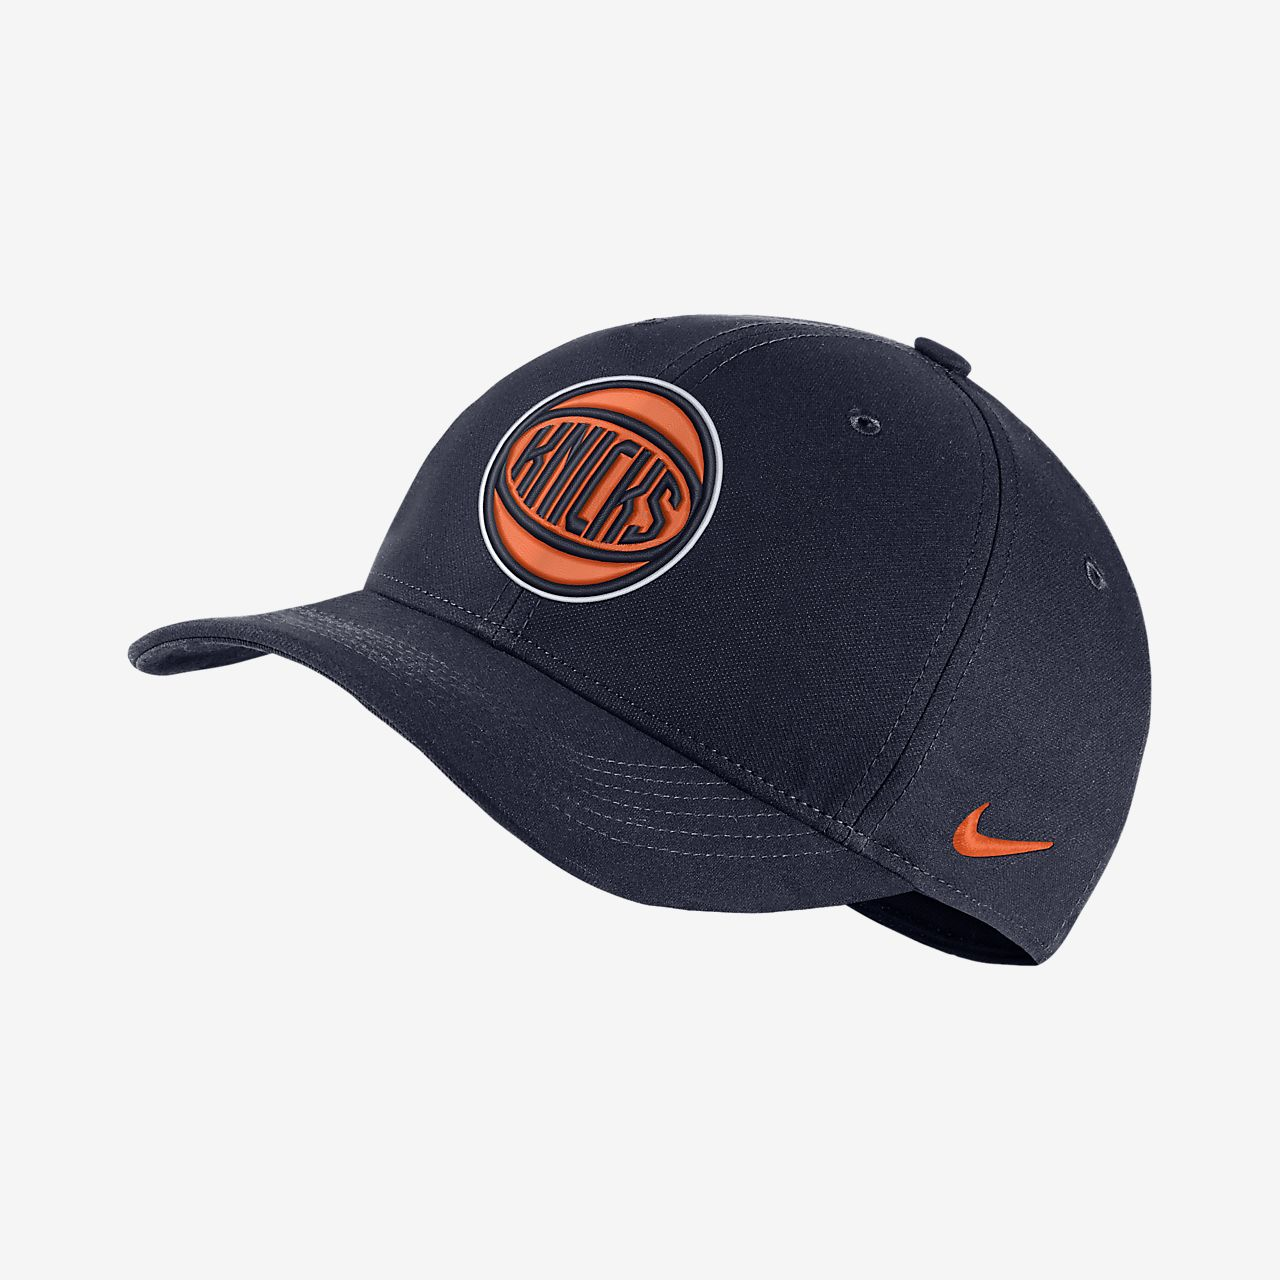 2d0c61a1dcde New York Knicks City Edition Nike AeroBill Classic99 NBA Hat. Nike ...